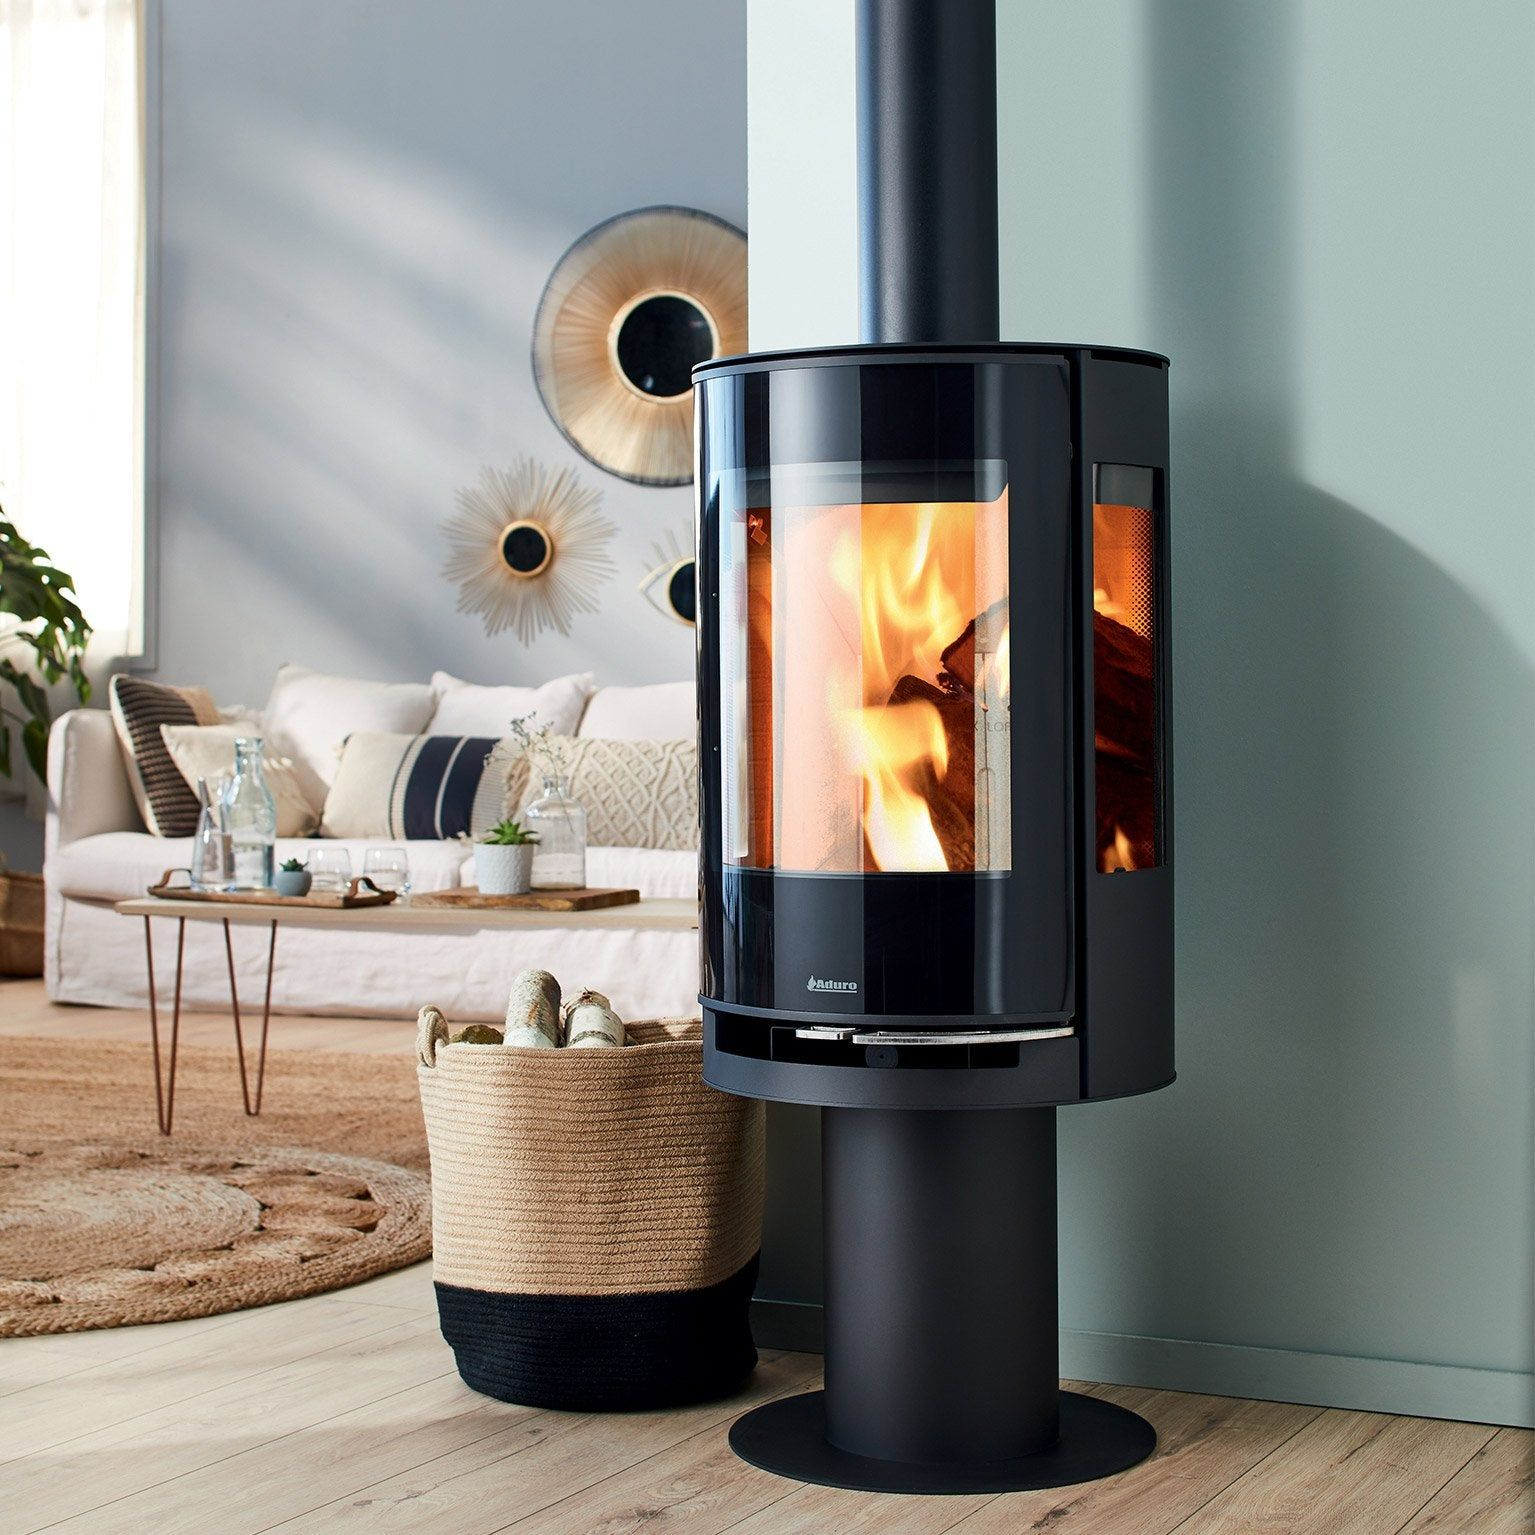 Poele A Bois Aduro 9 3 Lux 6 Kw In 2020 Wood Stove Home